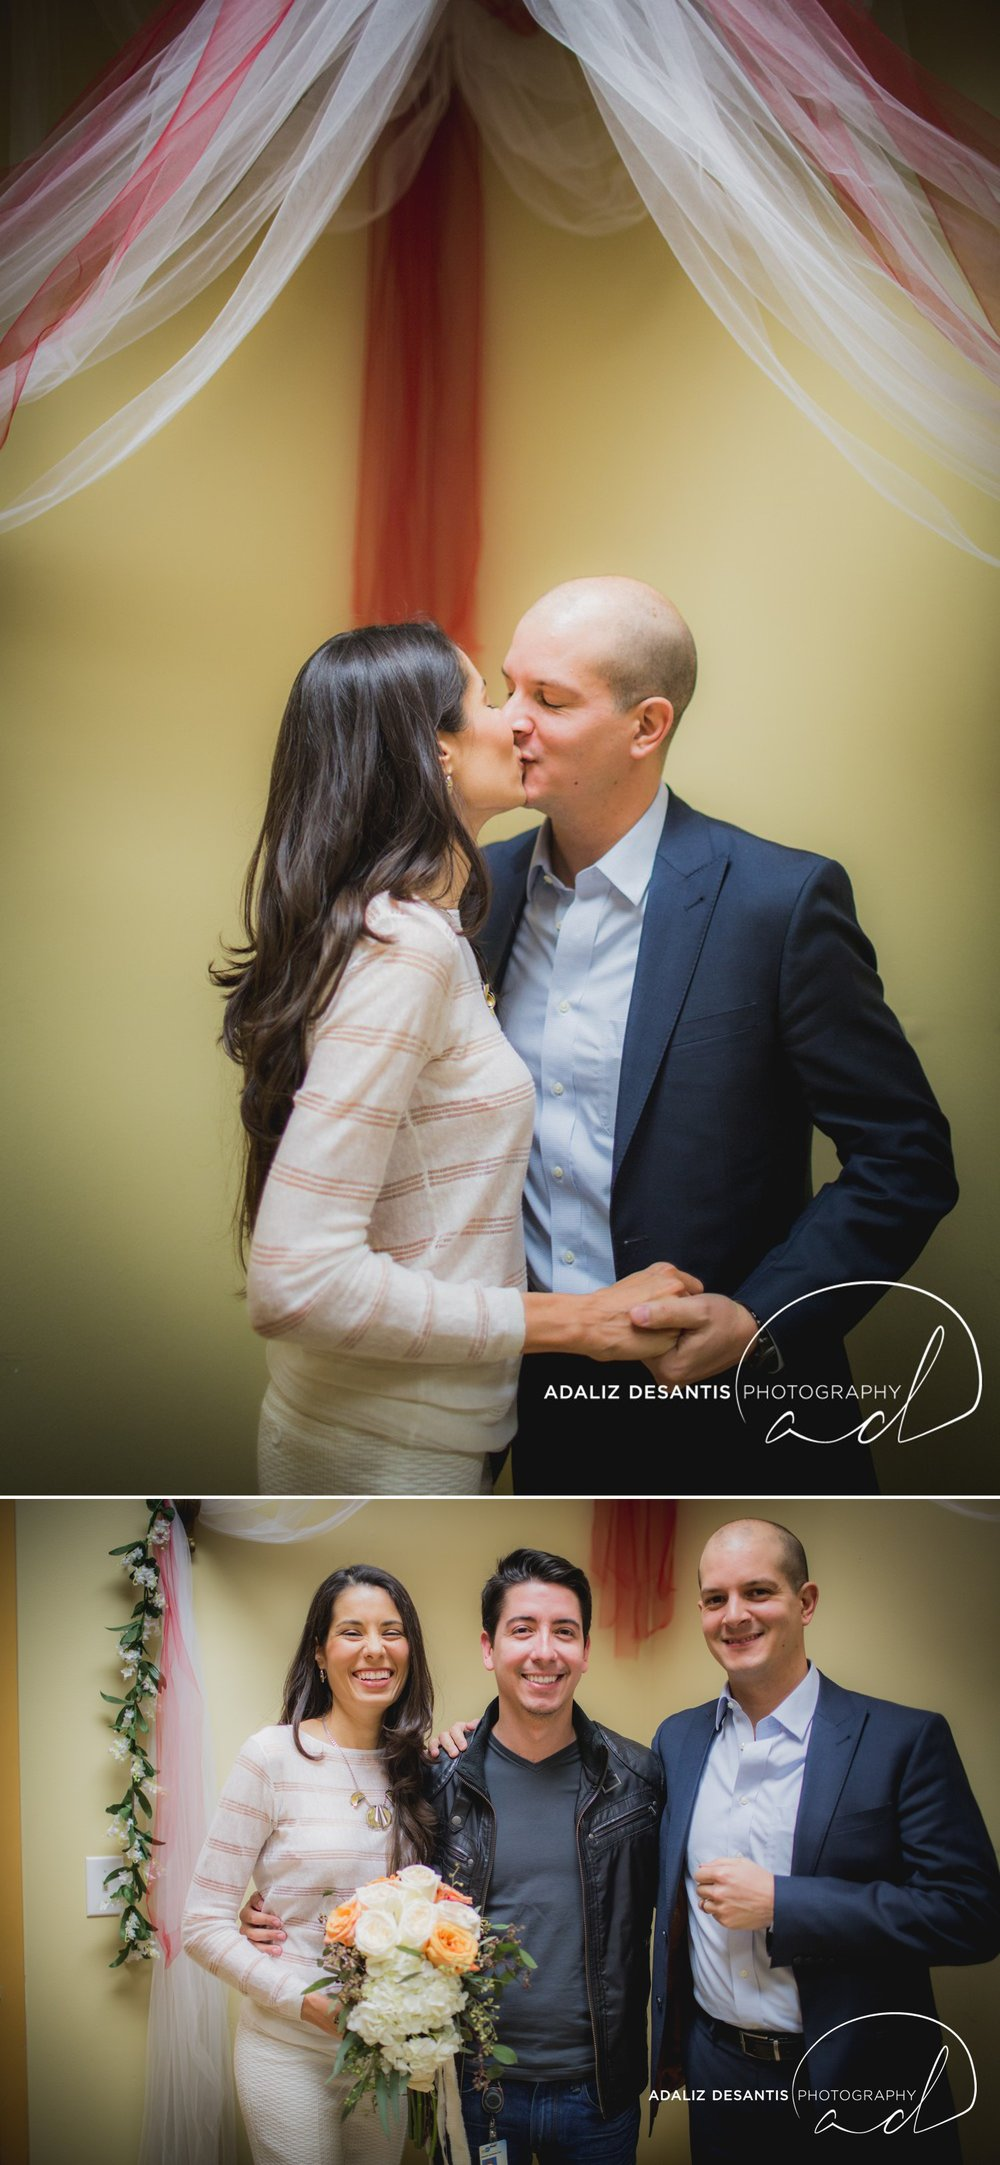 plymouth-congregational-church-coconut-grove-miami-elopement-matrimonio-civil-coral-gables 10.jpg